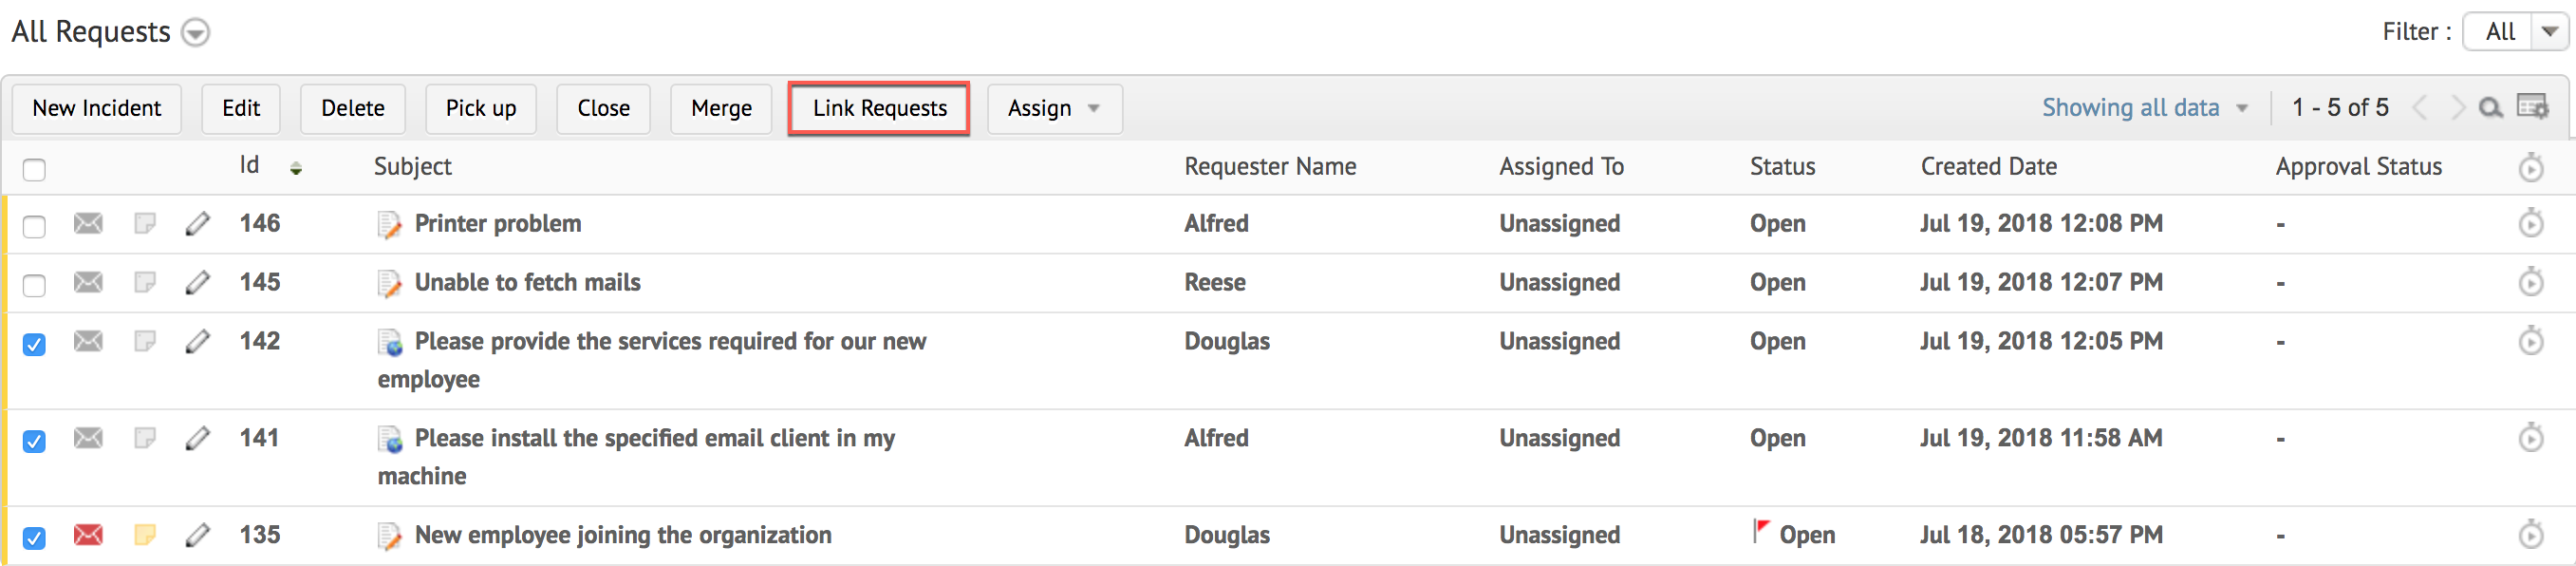 Link request: Create new notes and resolution in your helpdesk